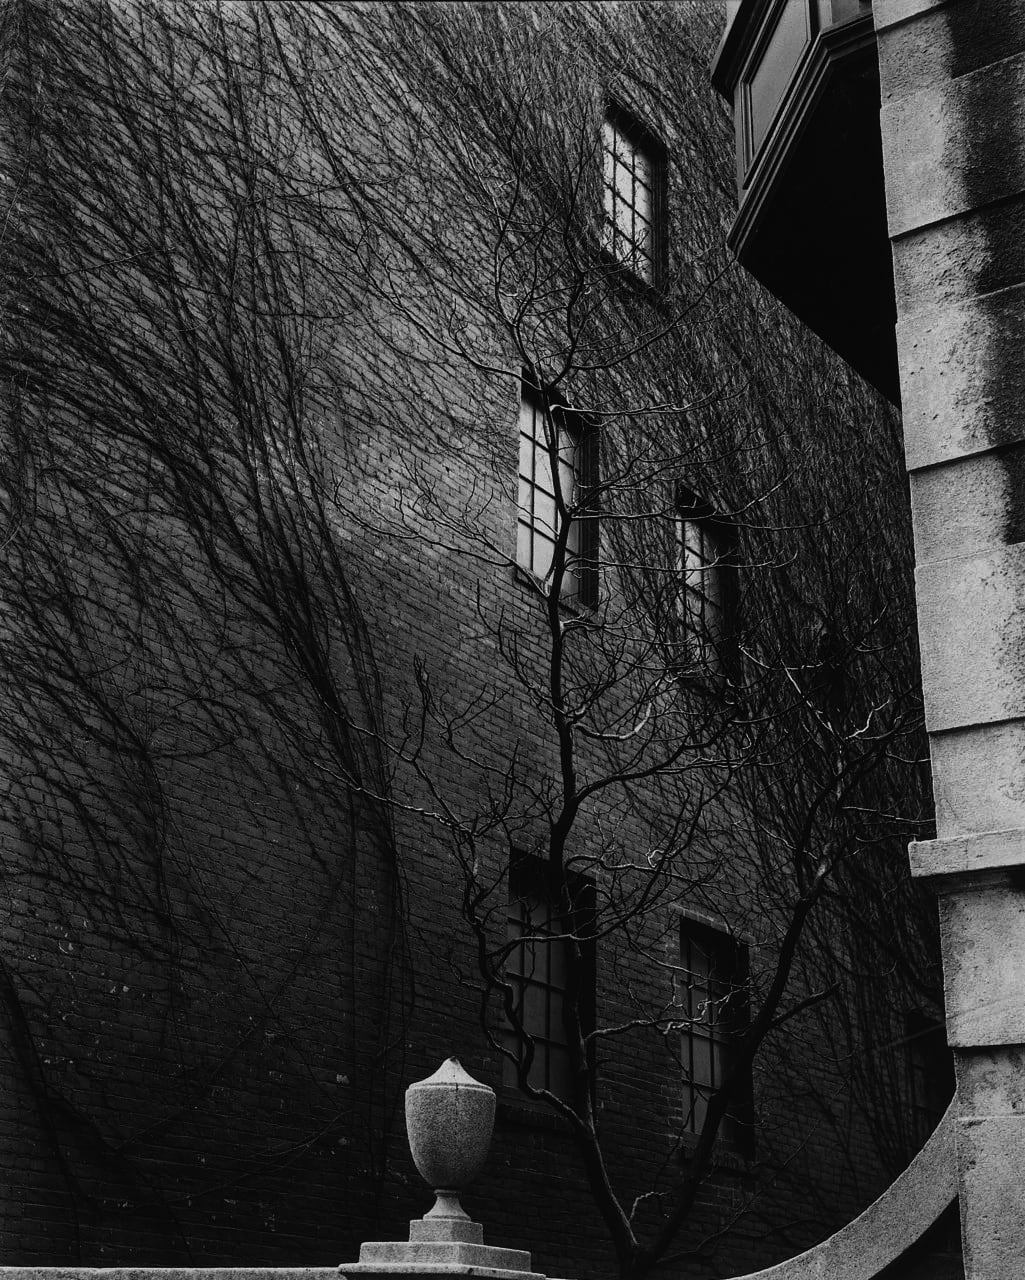 "Brett Weston Sutton Place, New York City, 1944 (Printed 1970's) Gelatin Silver Print Image - 10.5""x13.5"", Mount - 15""x18"", Matted - 16""x20"""